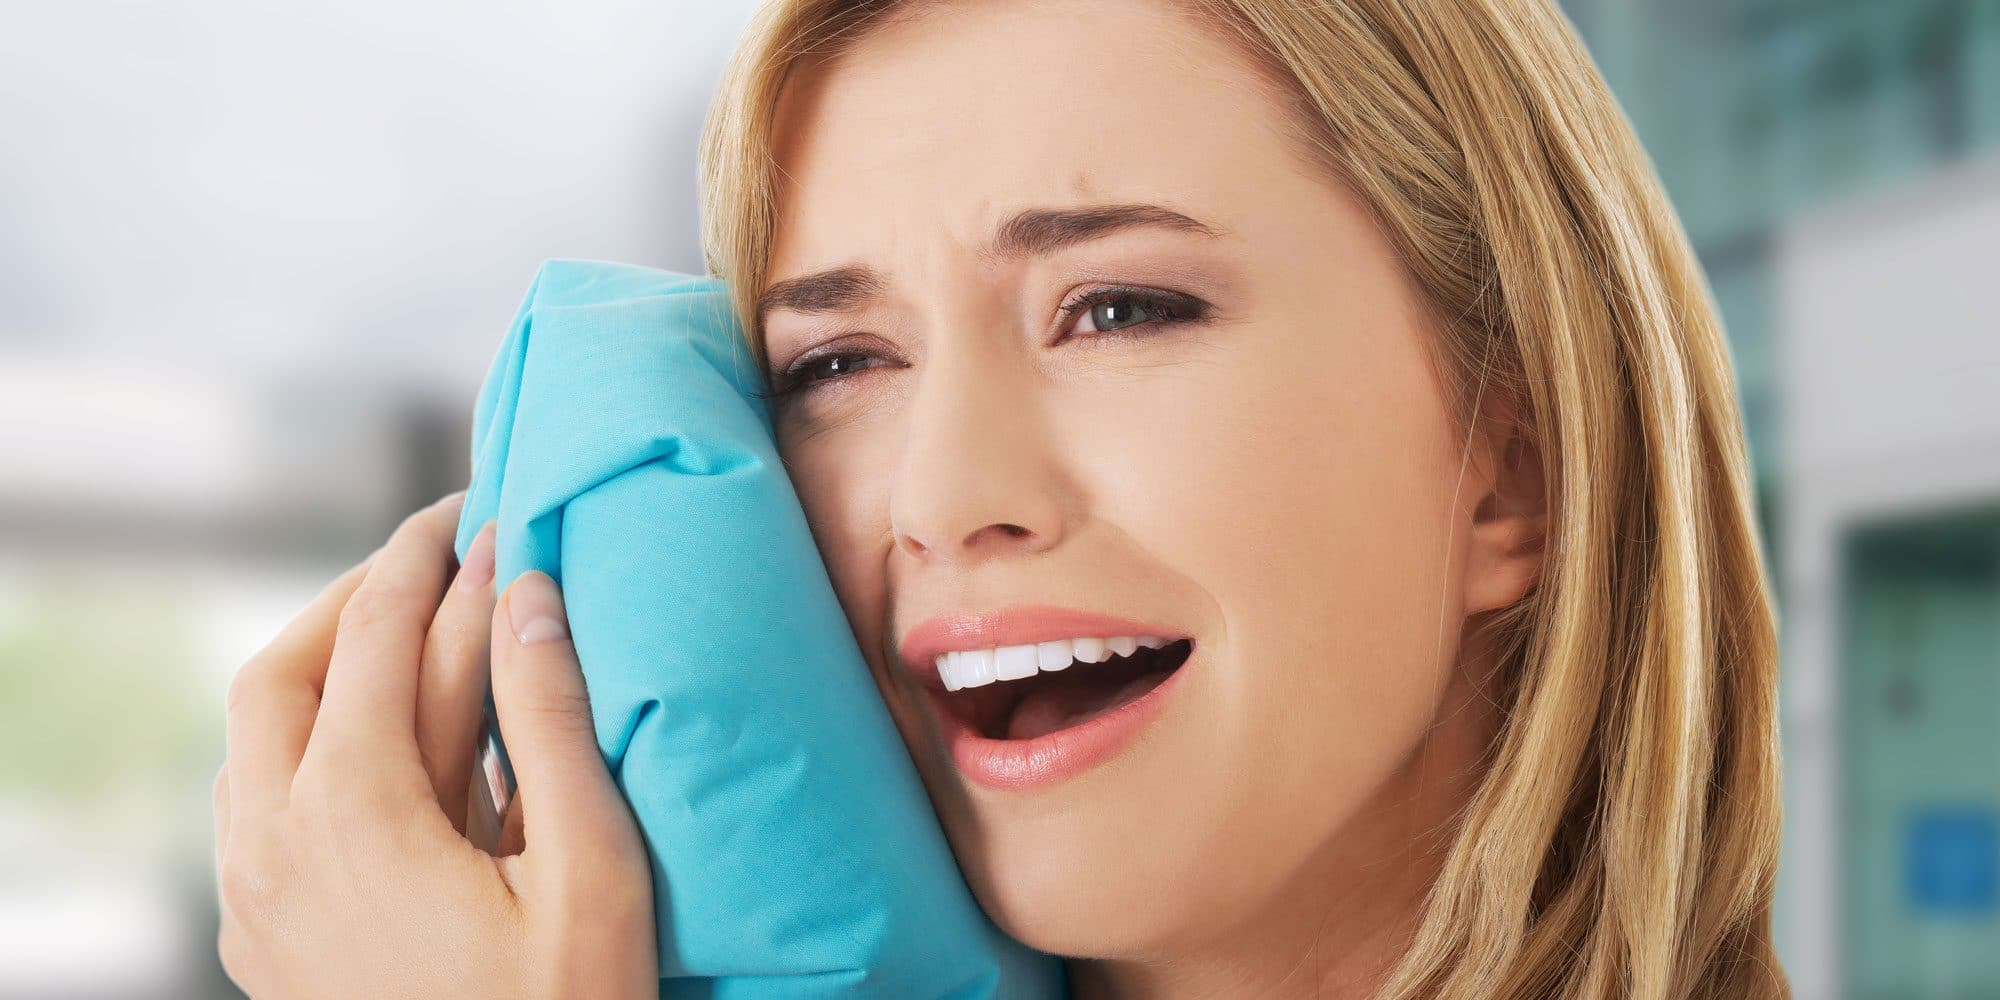 How long Does a Root Canal Take & Is There Pain After?